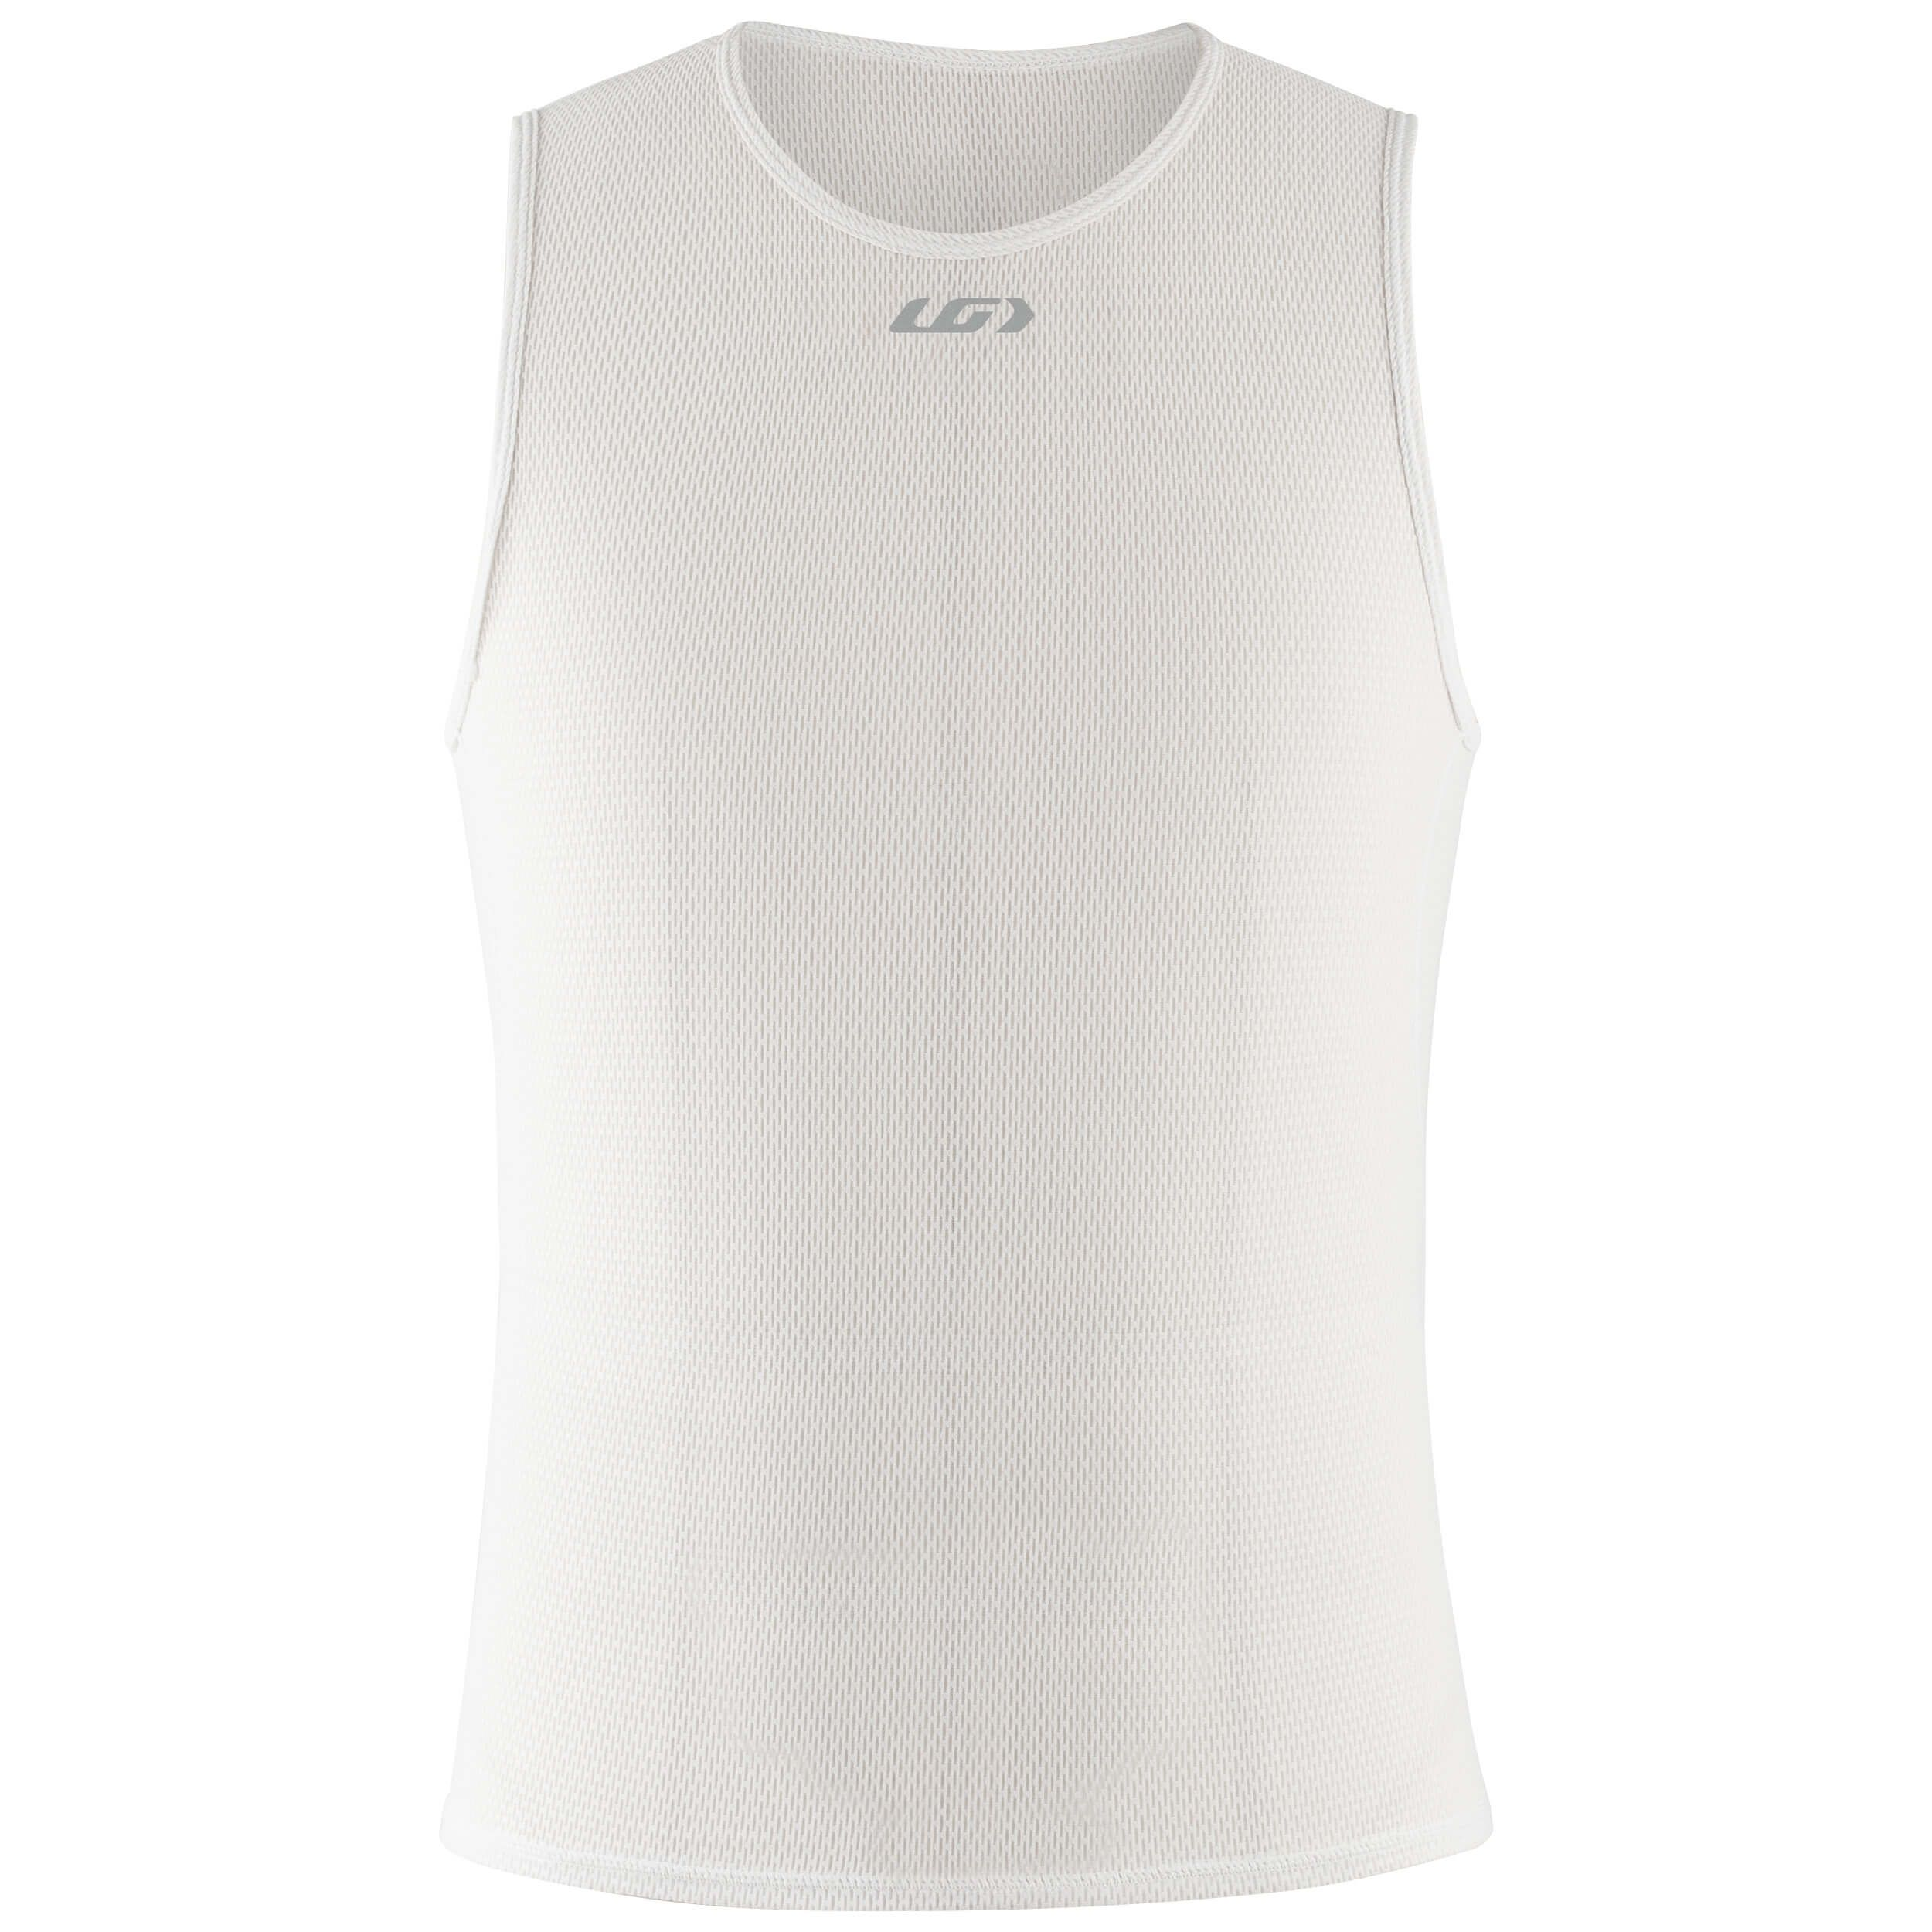 239b17aa9efc60 Garneau Men s 1001 singlet top